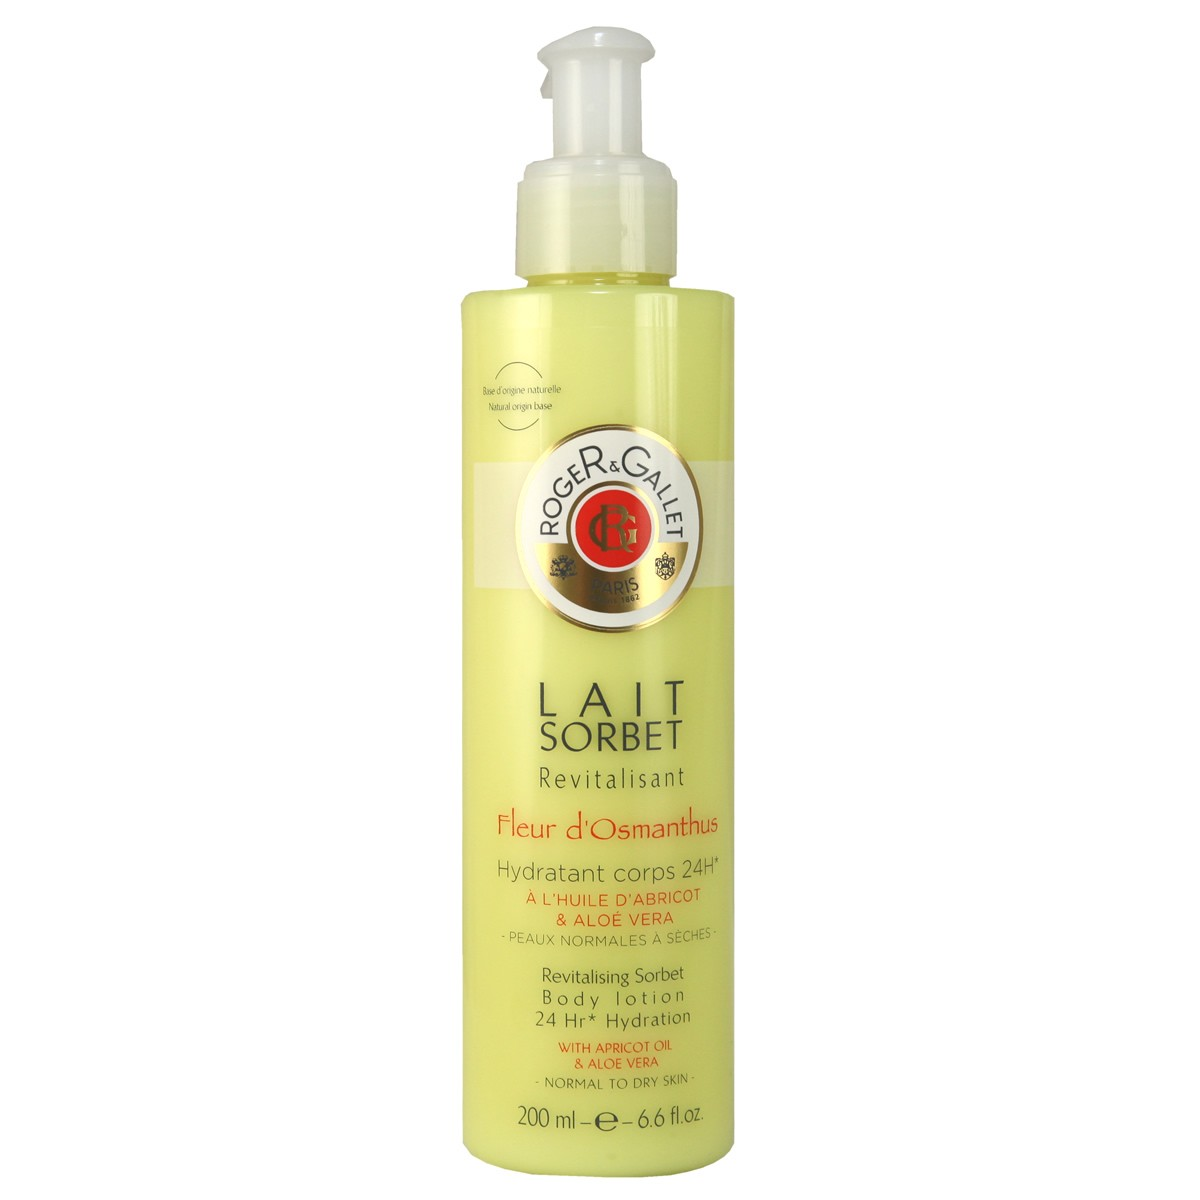 Roger & Gallet Fleur d'Osmanthus Revitalising Sorbet Body Lotion